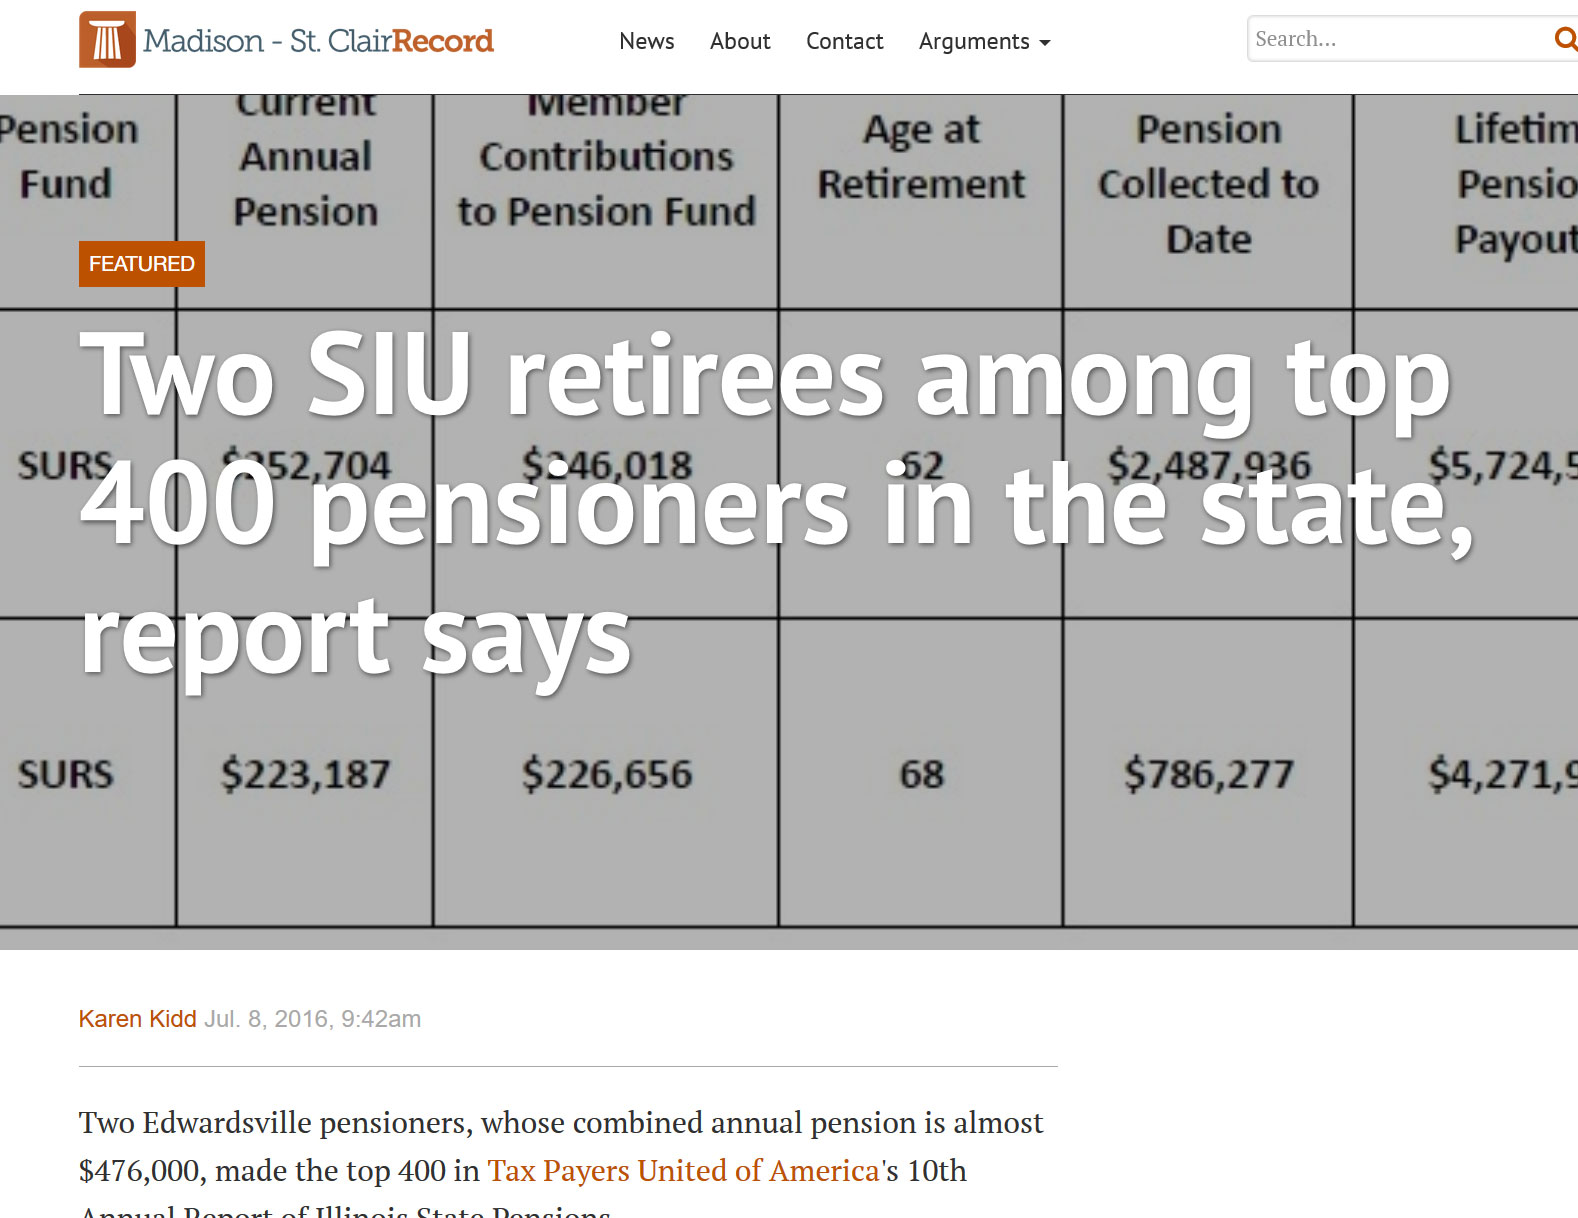 Madison Record|Two SIU retirees among top 400 pensioners in the state, report says